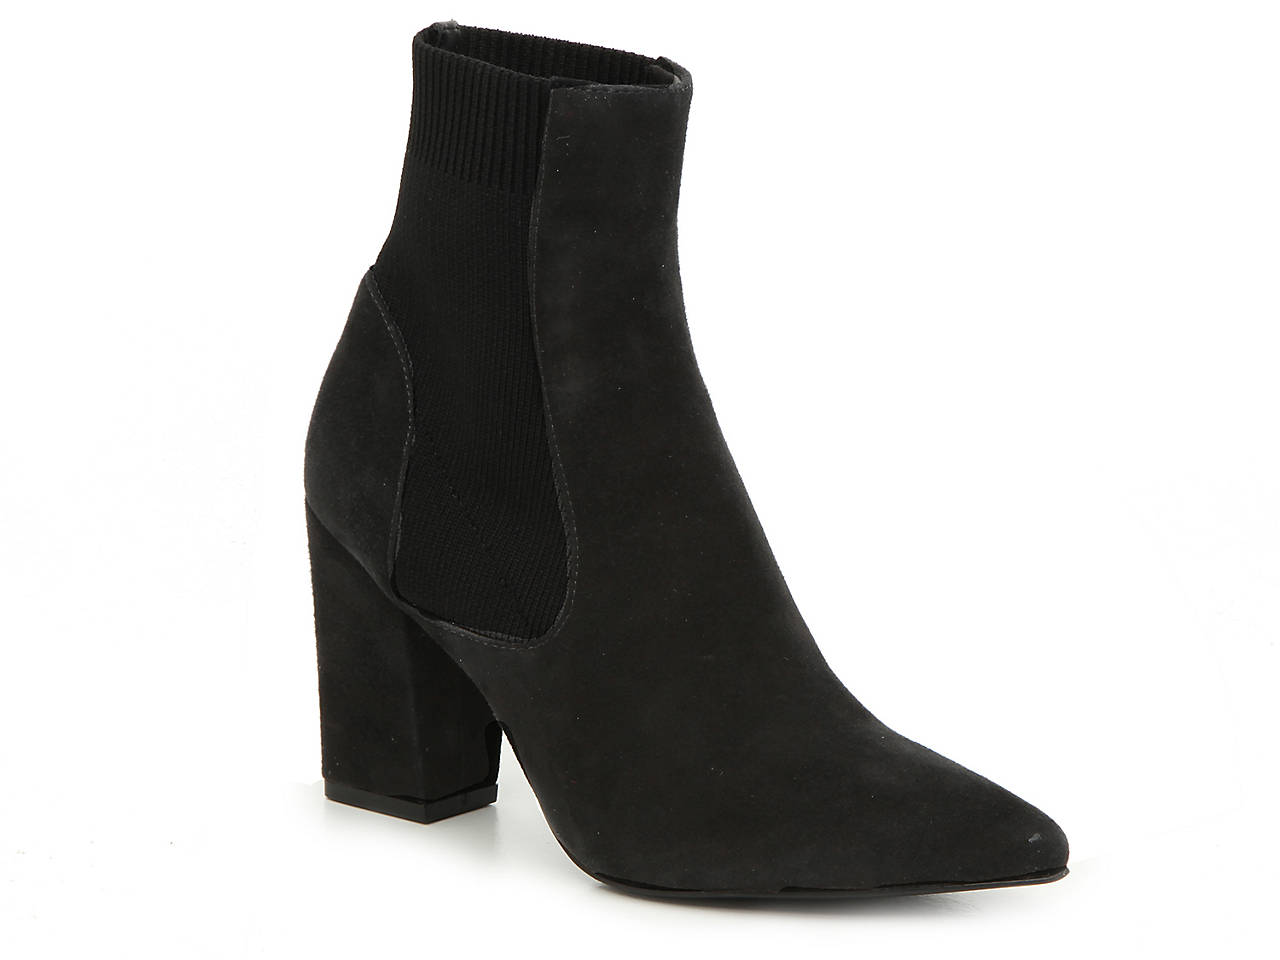 baa83a94489 Pieses Bootie